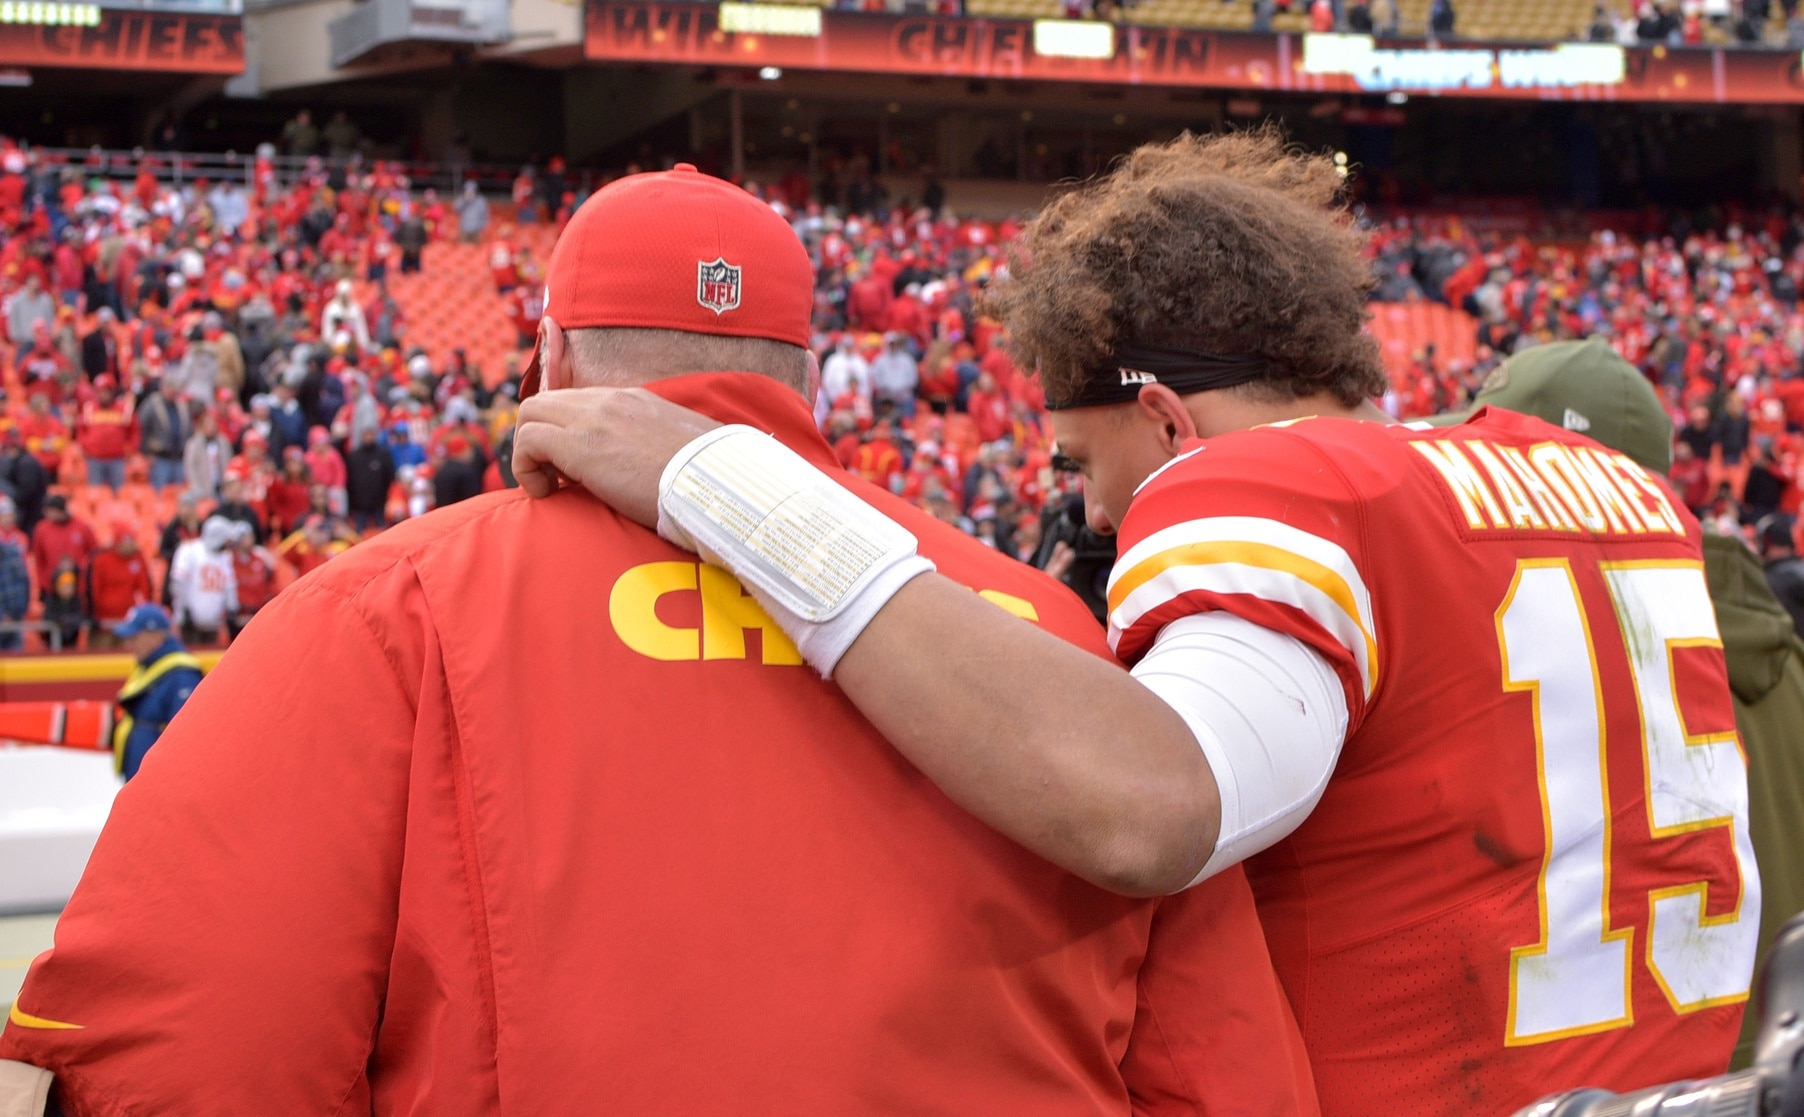 Stepfather Of Patrick Mahomes Girlfriend Passed Away While